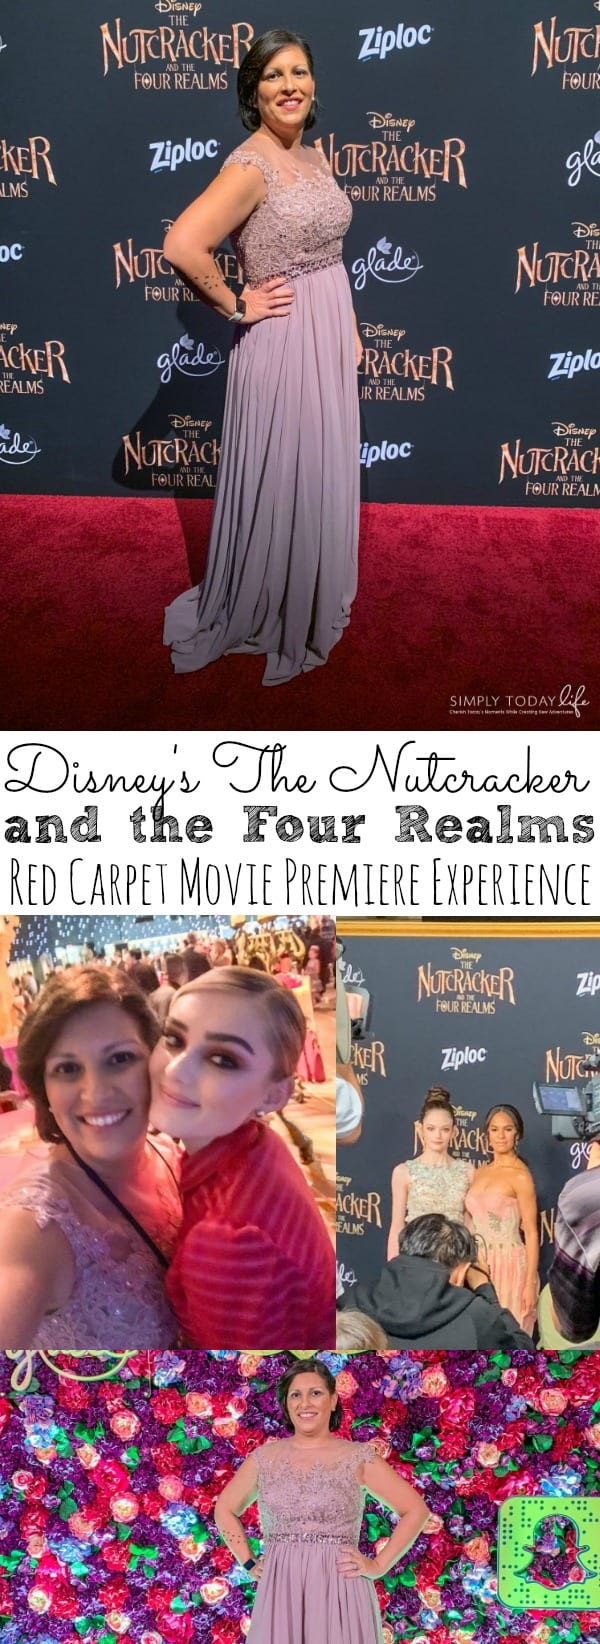 The Nutcracker and the Four Realms Red Carpet Movie Premiere Experience